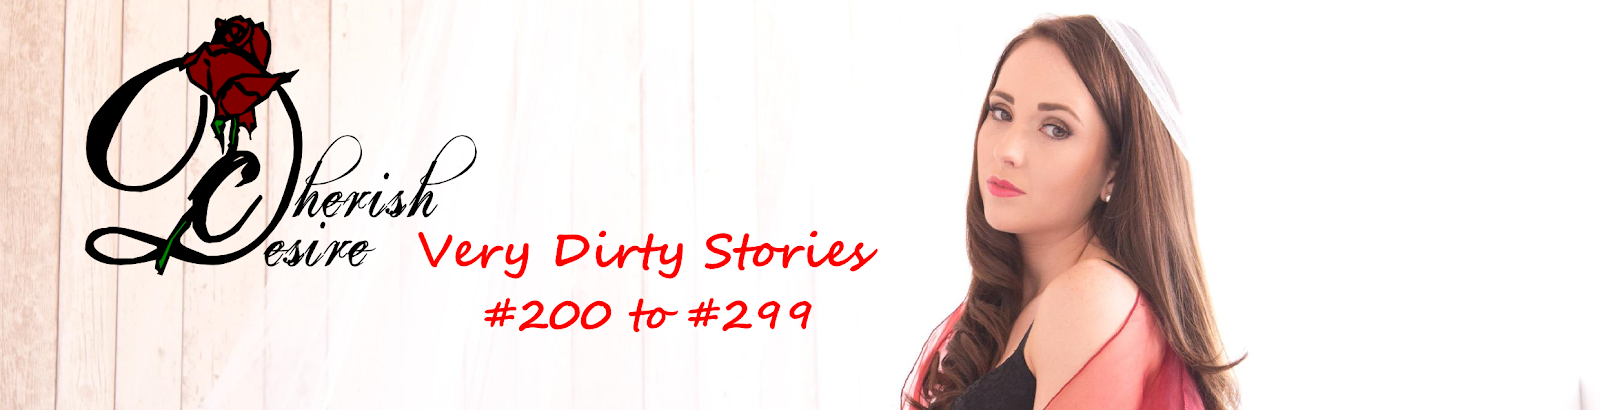 Very Dirty Stories #200 to #299, Max D, erotica